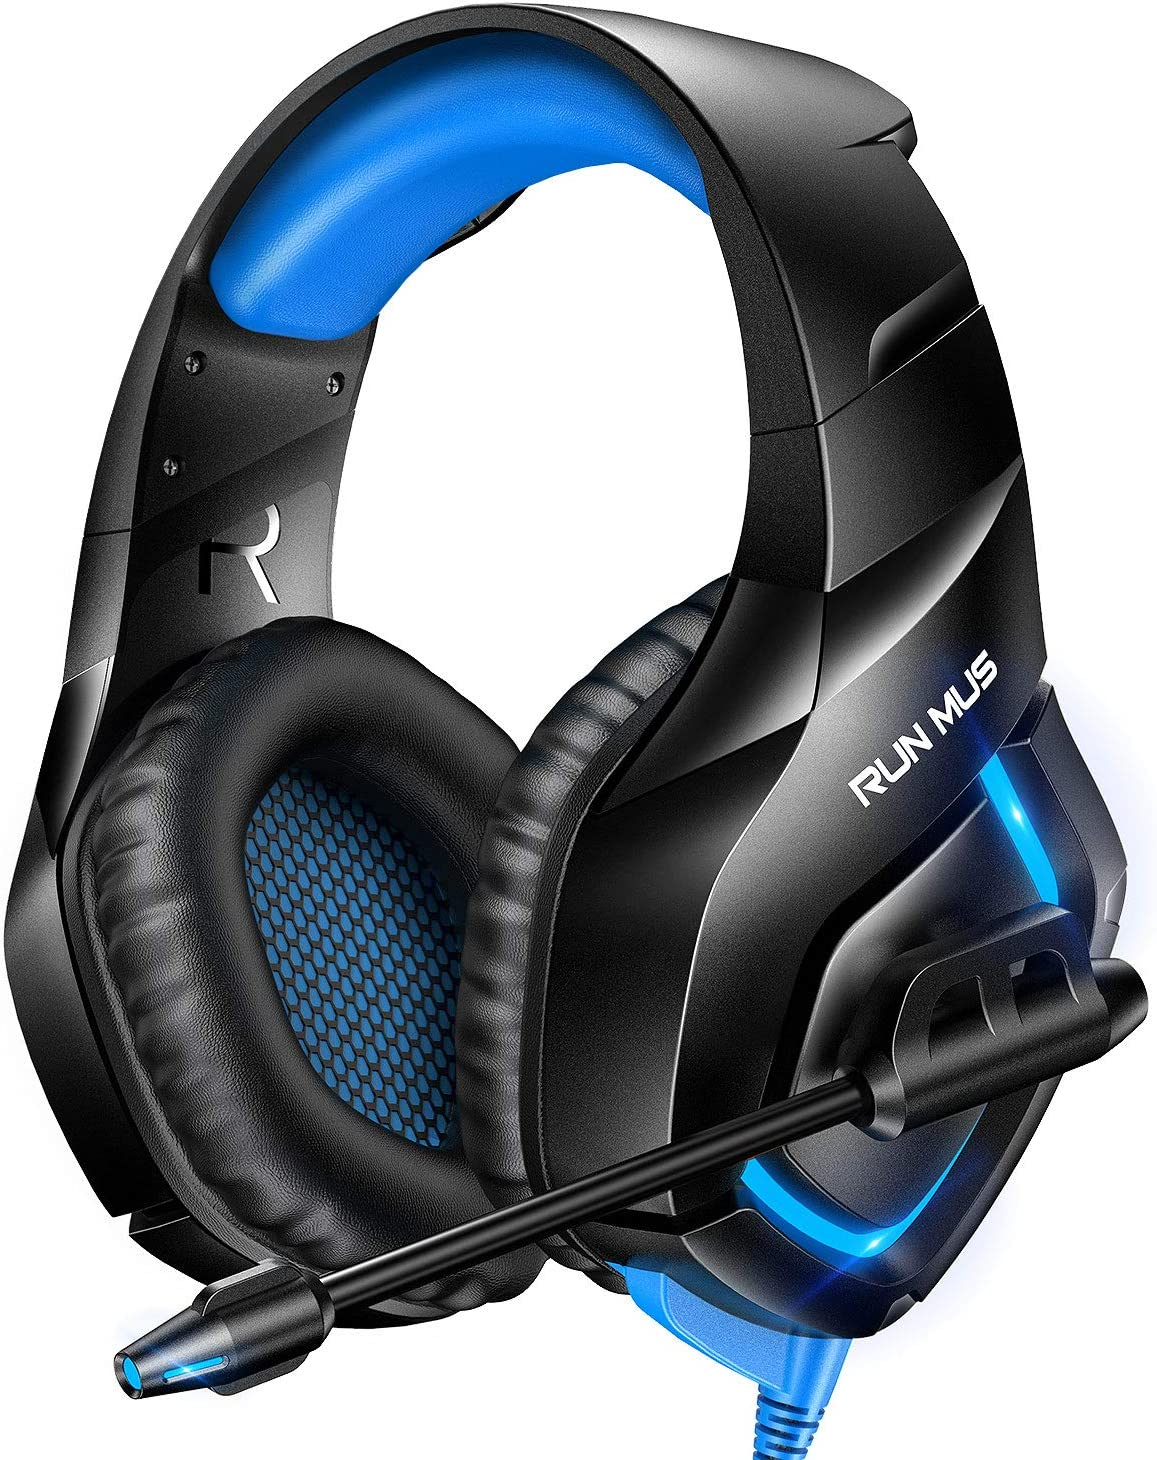 RUNMUS Gaming Headset PS4 Headset with 7.1 Surround Sound, PC Headset Compatible w/ PS4, Xbox One(Adapter Not Included), PC, Laptop NS Sega Saturn, Blue